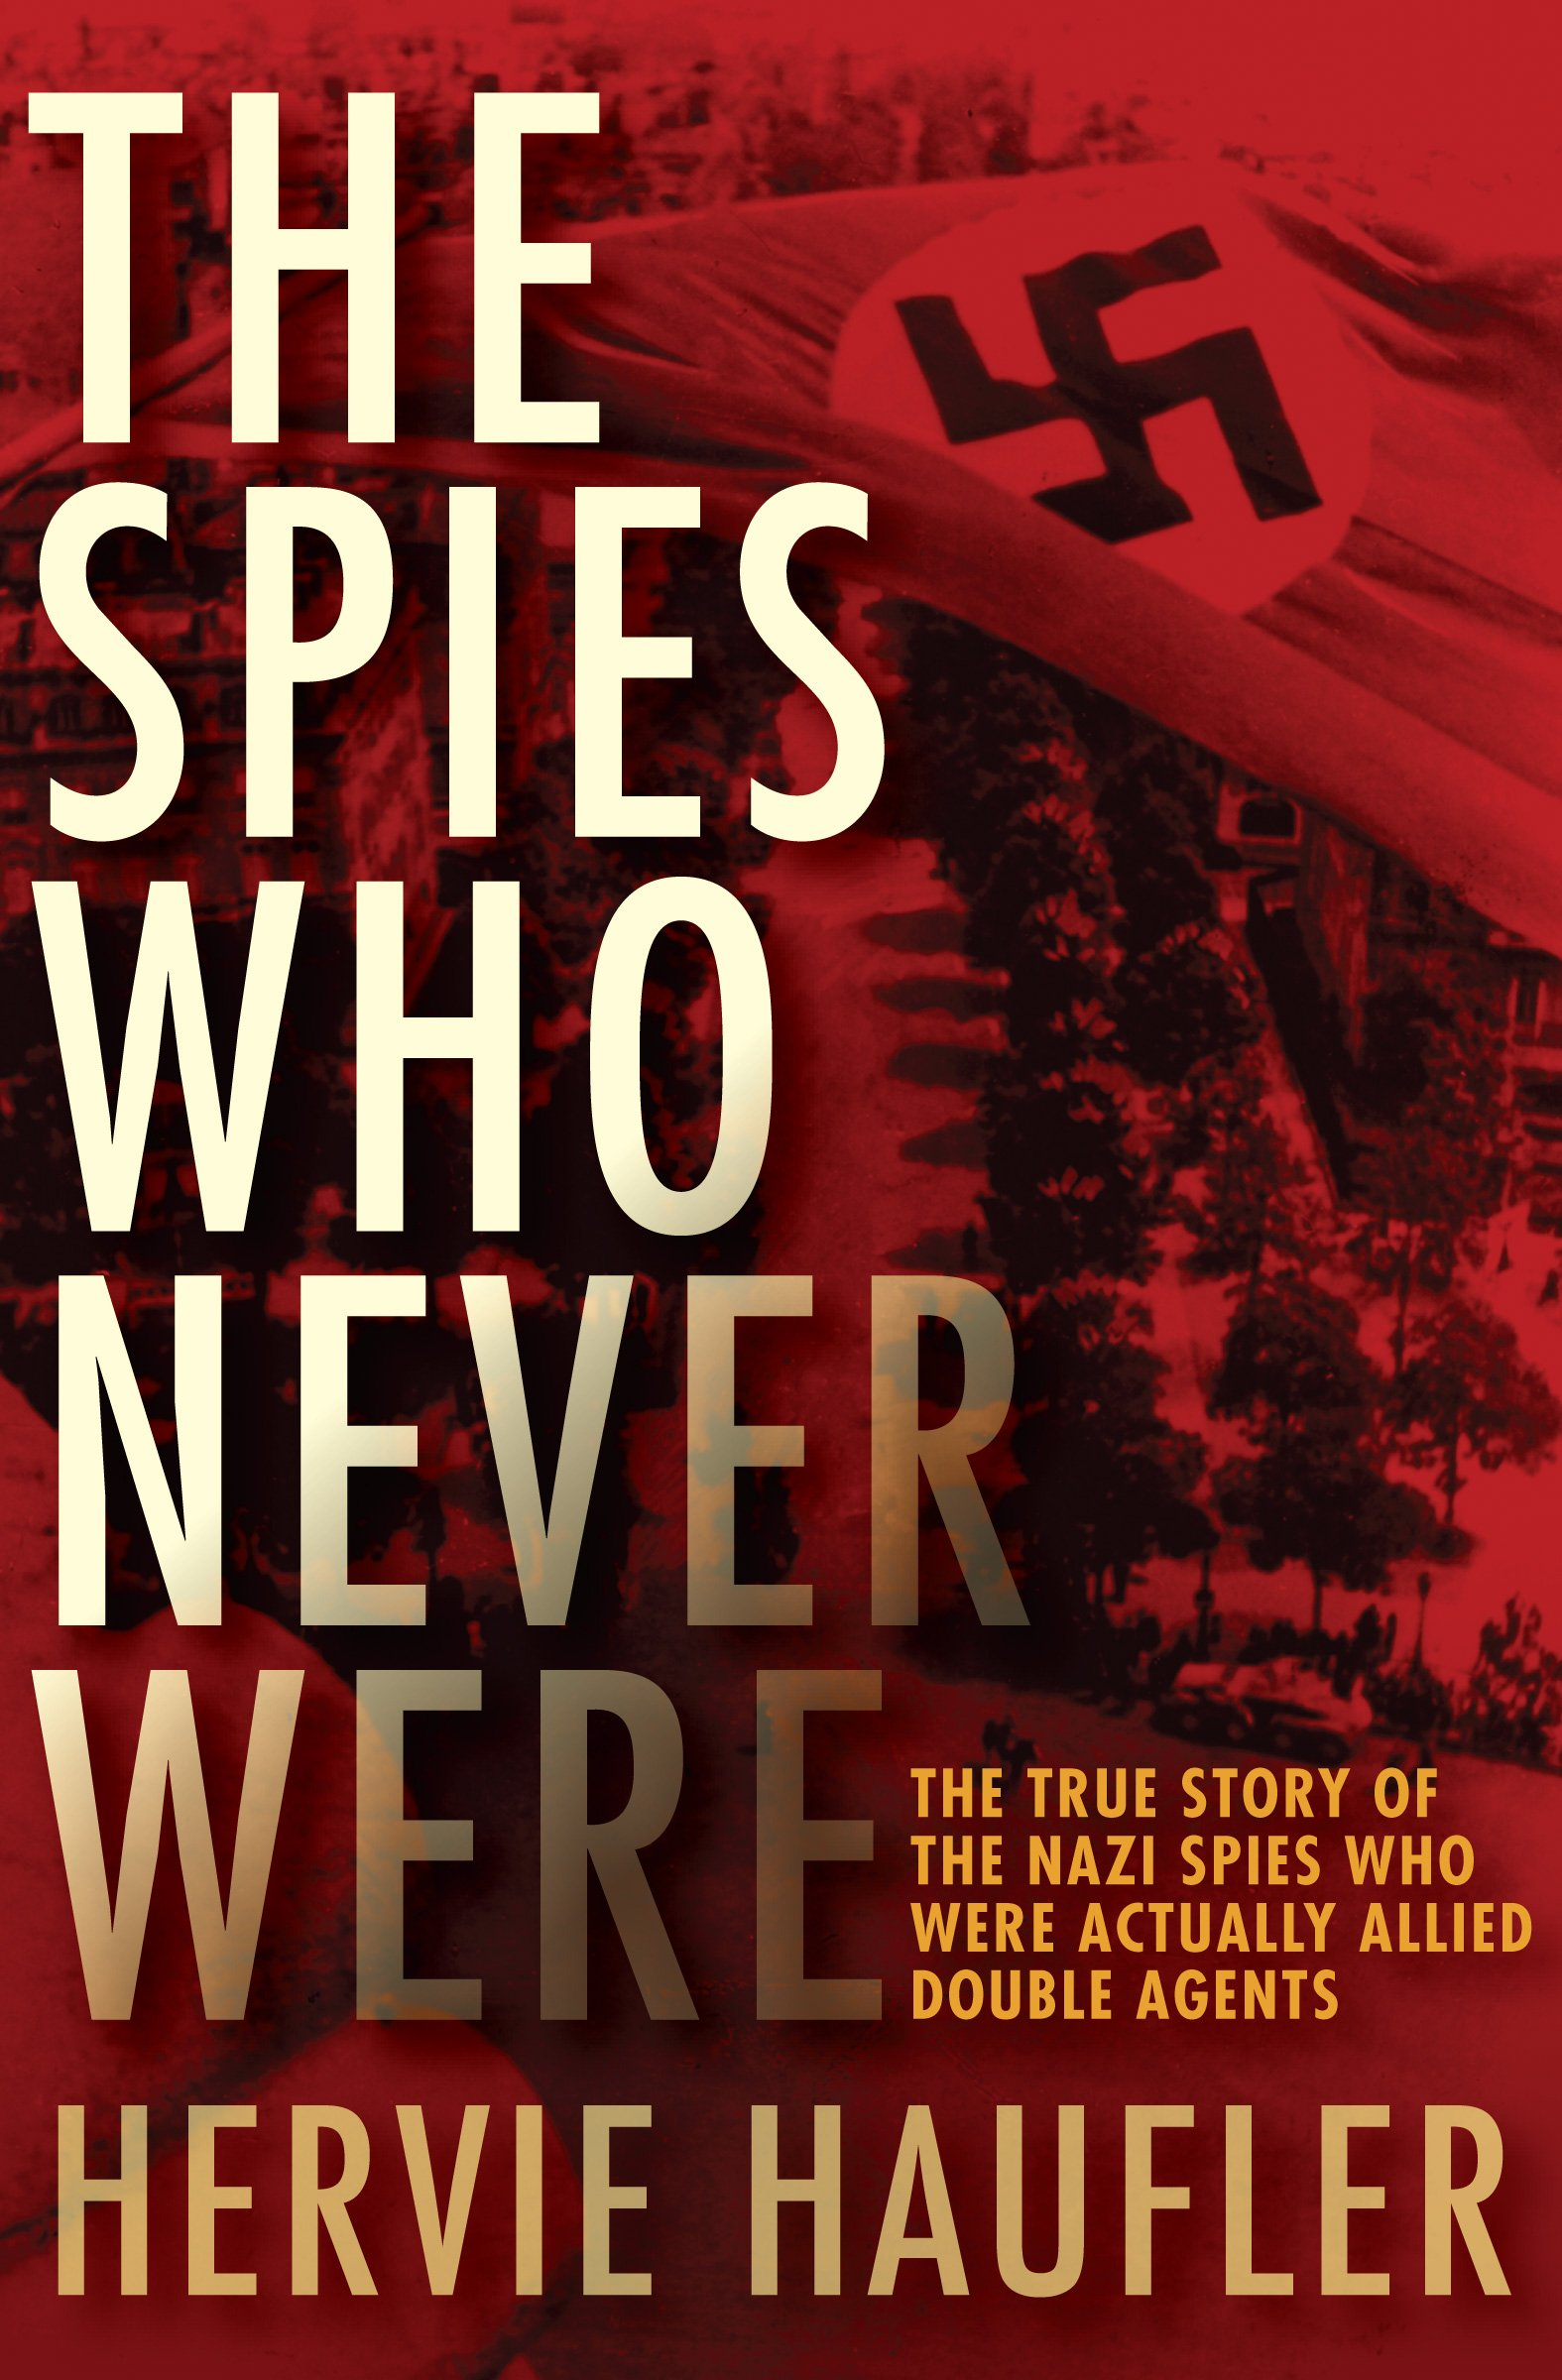 The Spies Who Never Were: The True Story Of The Nazi Spies Who Were  Actually Allied Double Agents: Hervie Haufler: 9781497638167: Amazon:  Books